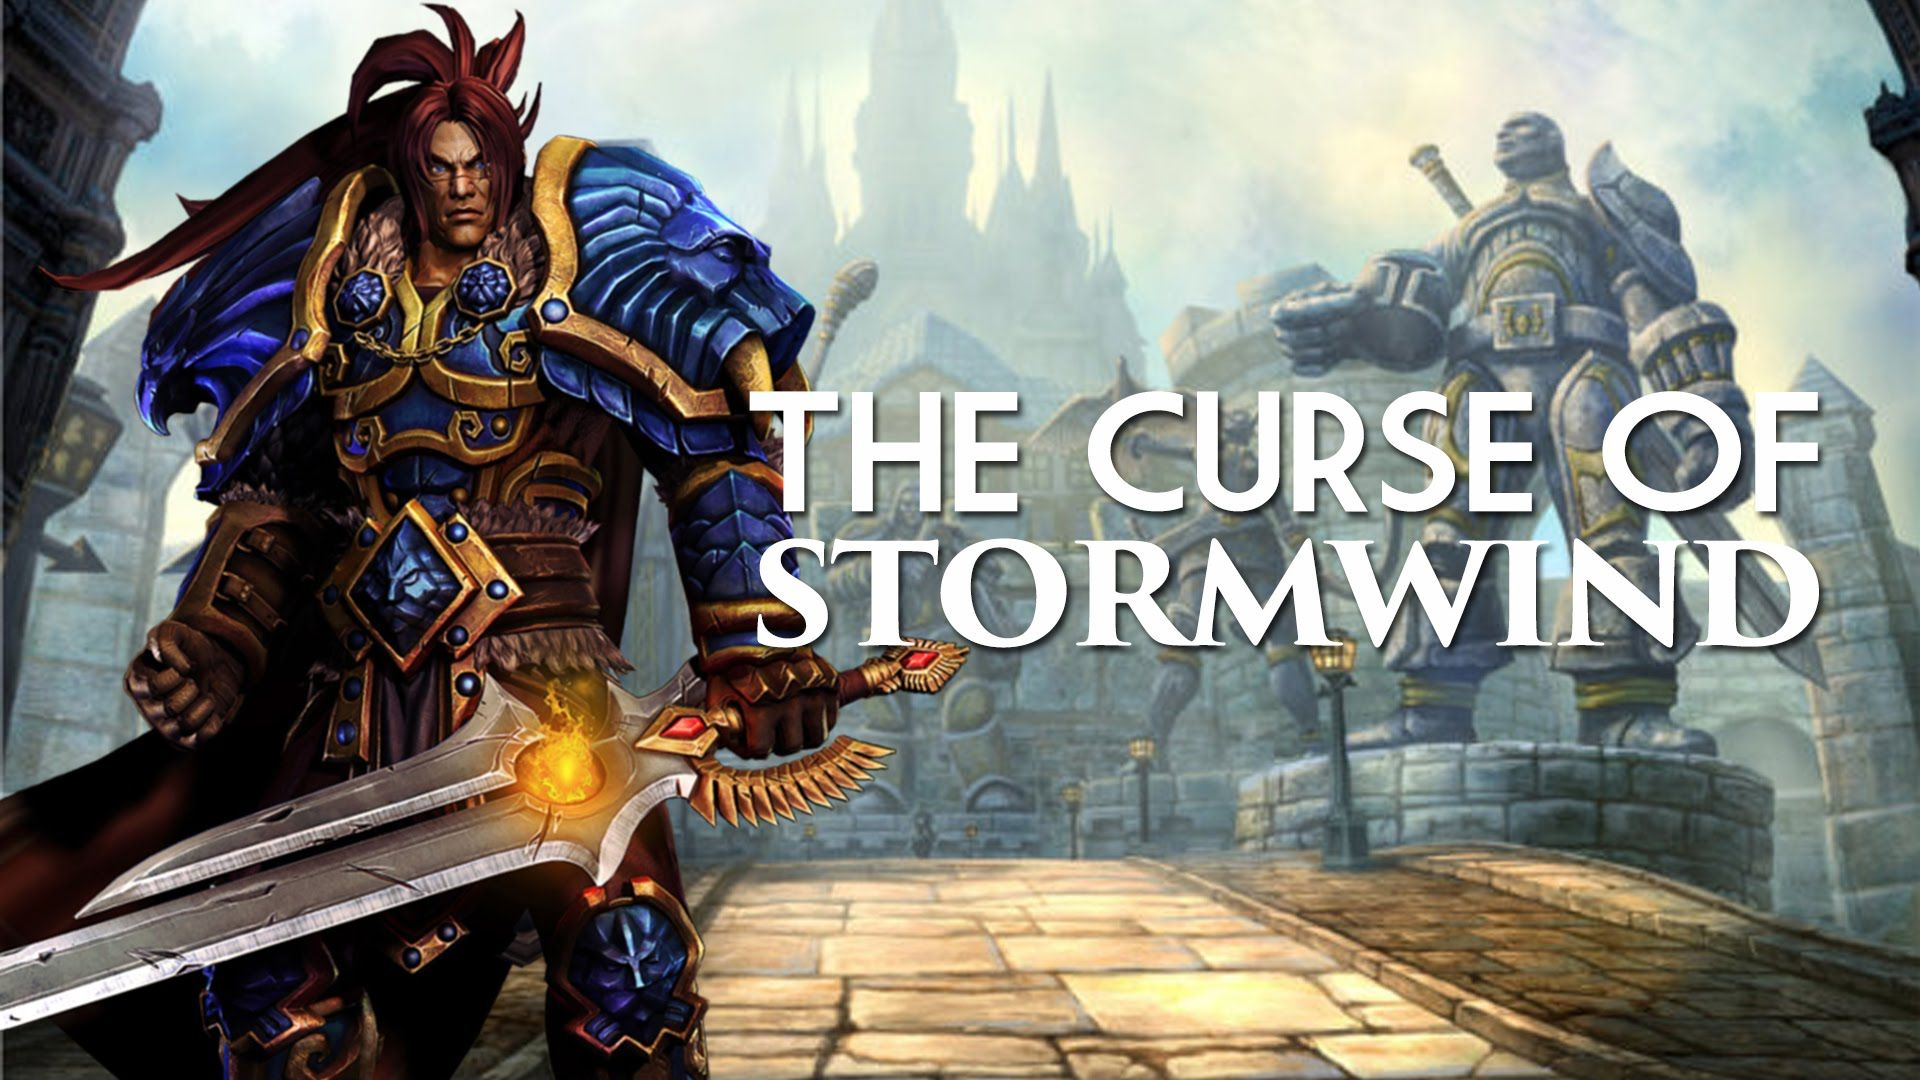 The curse of stormwind wow music video youtube wallpapers k